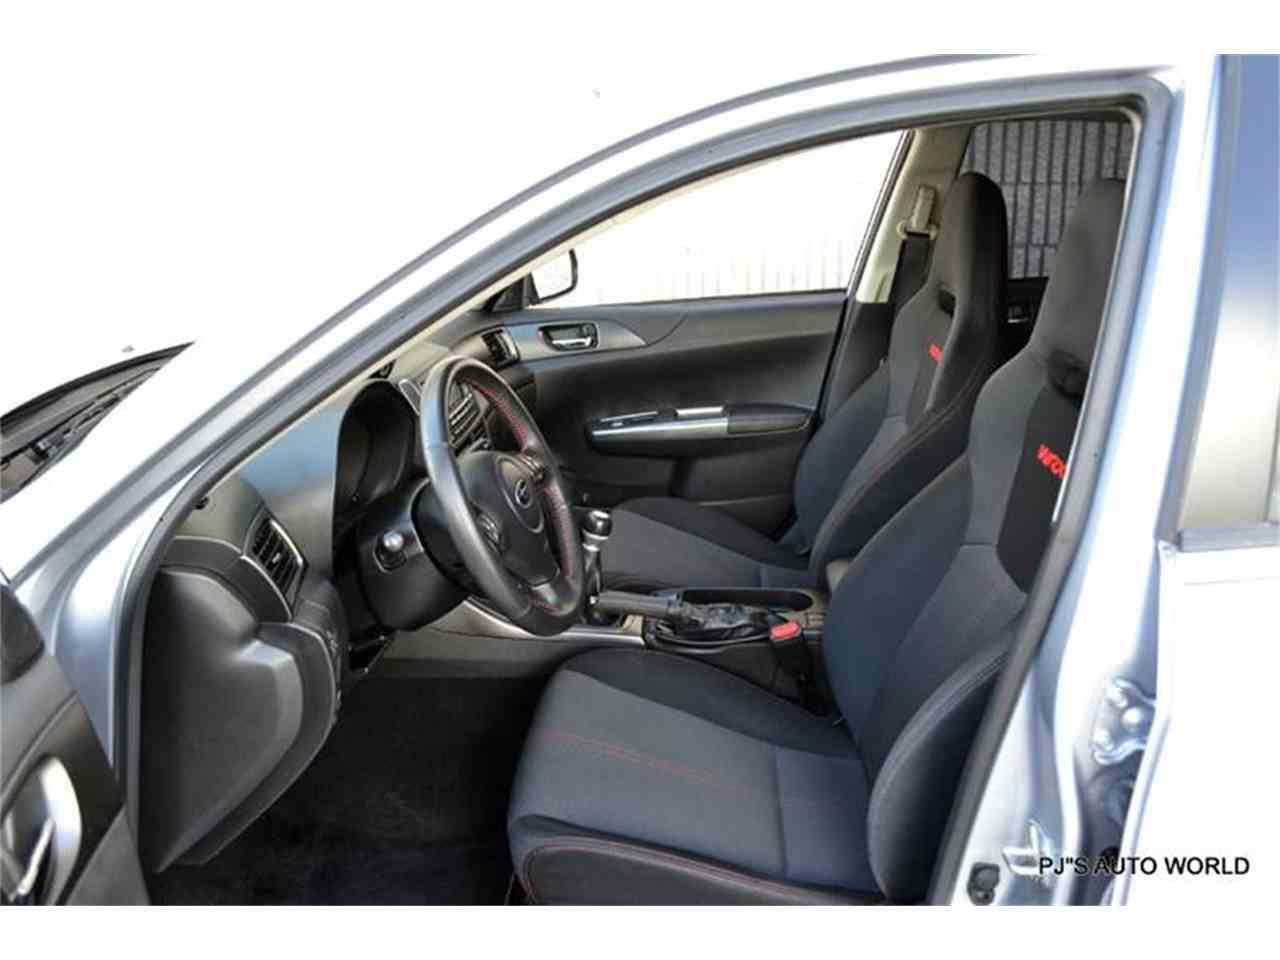 Large Picture of 2013 Subaru Impreza located in Florida Offered by PJ's Auto World - J6WM